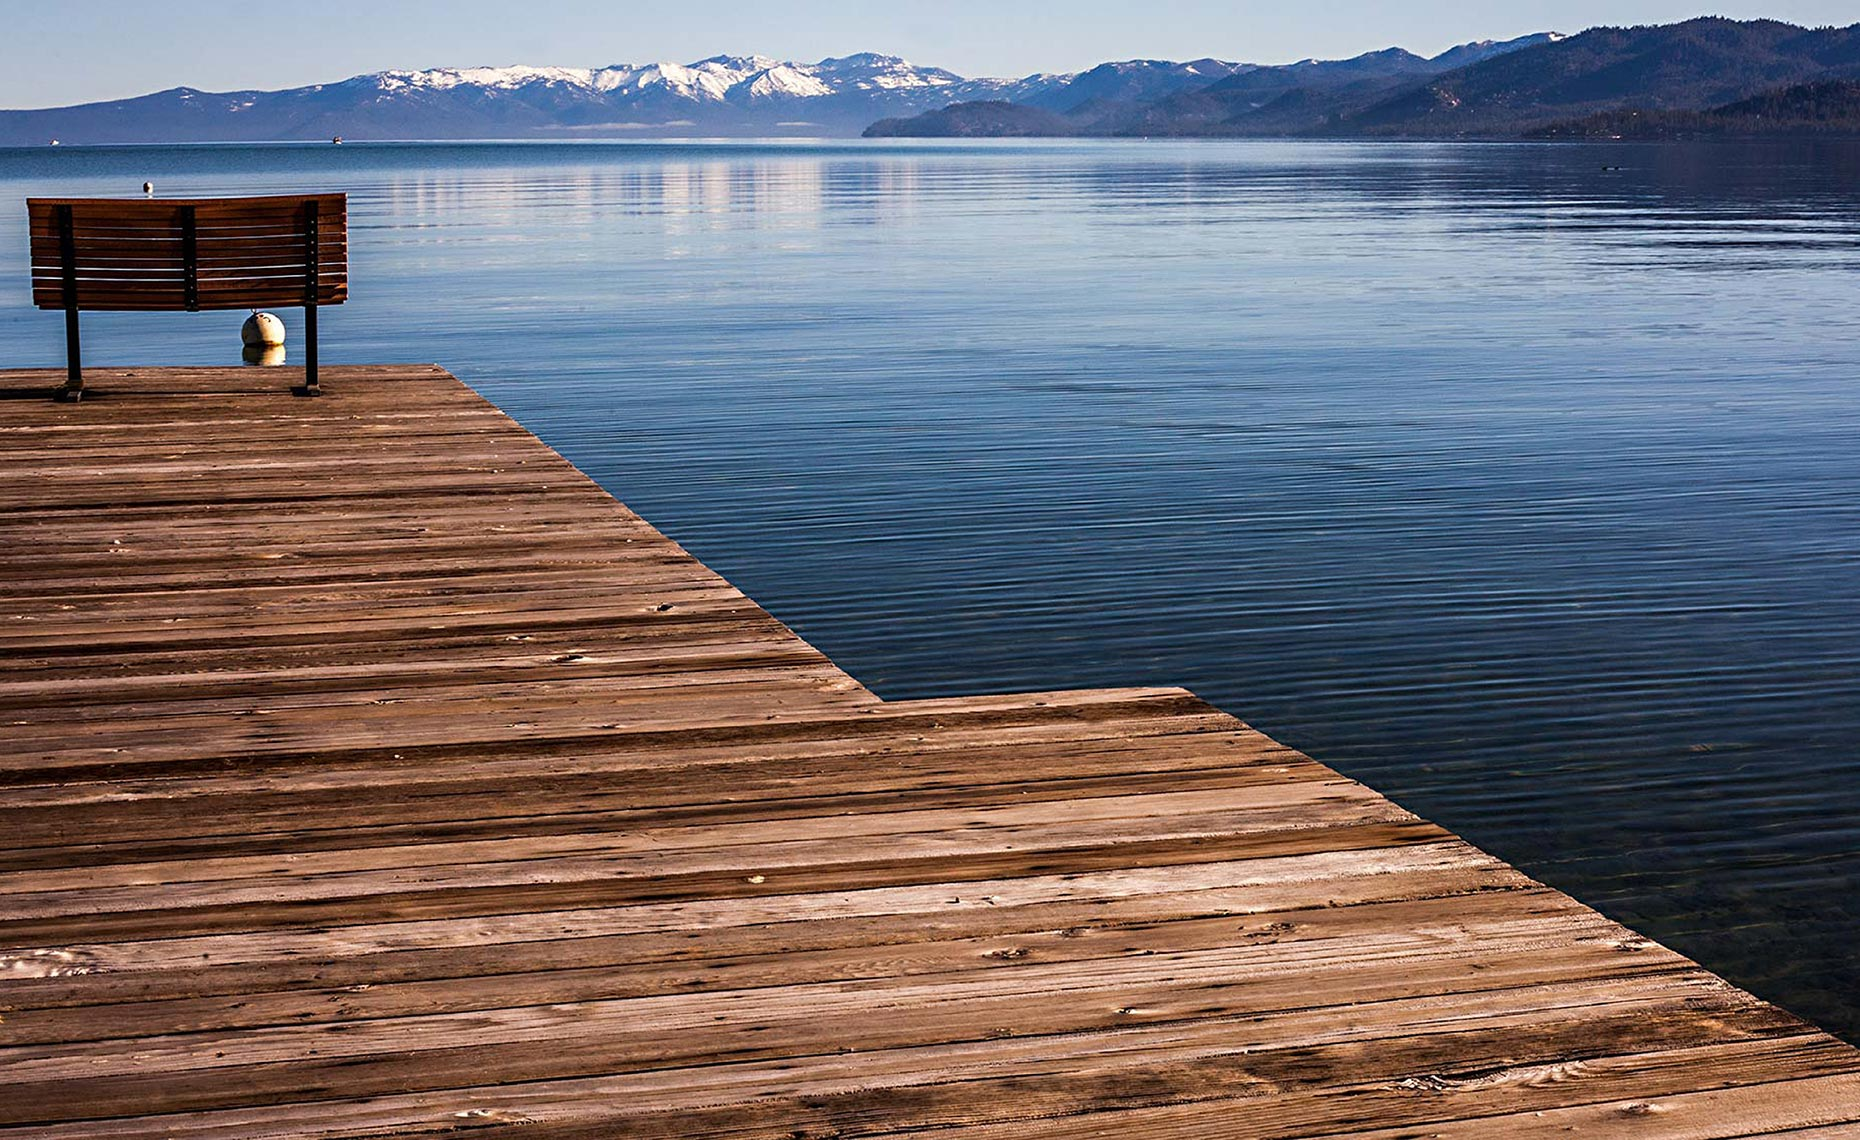 10_South_Lake_Tahoe_California_Environment_Landscape_Chris_Wellhausen_Photography.JPG